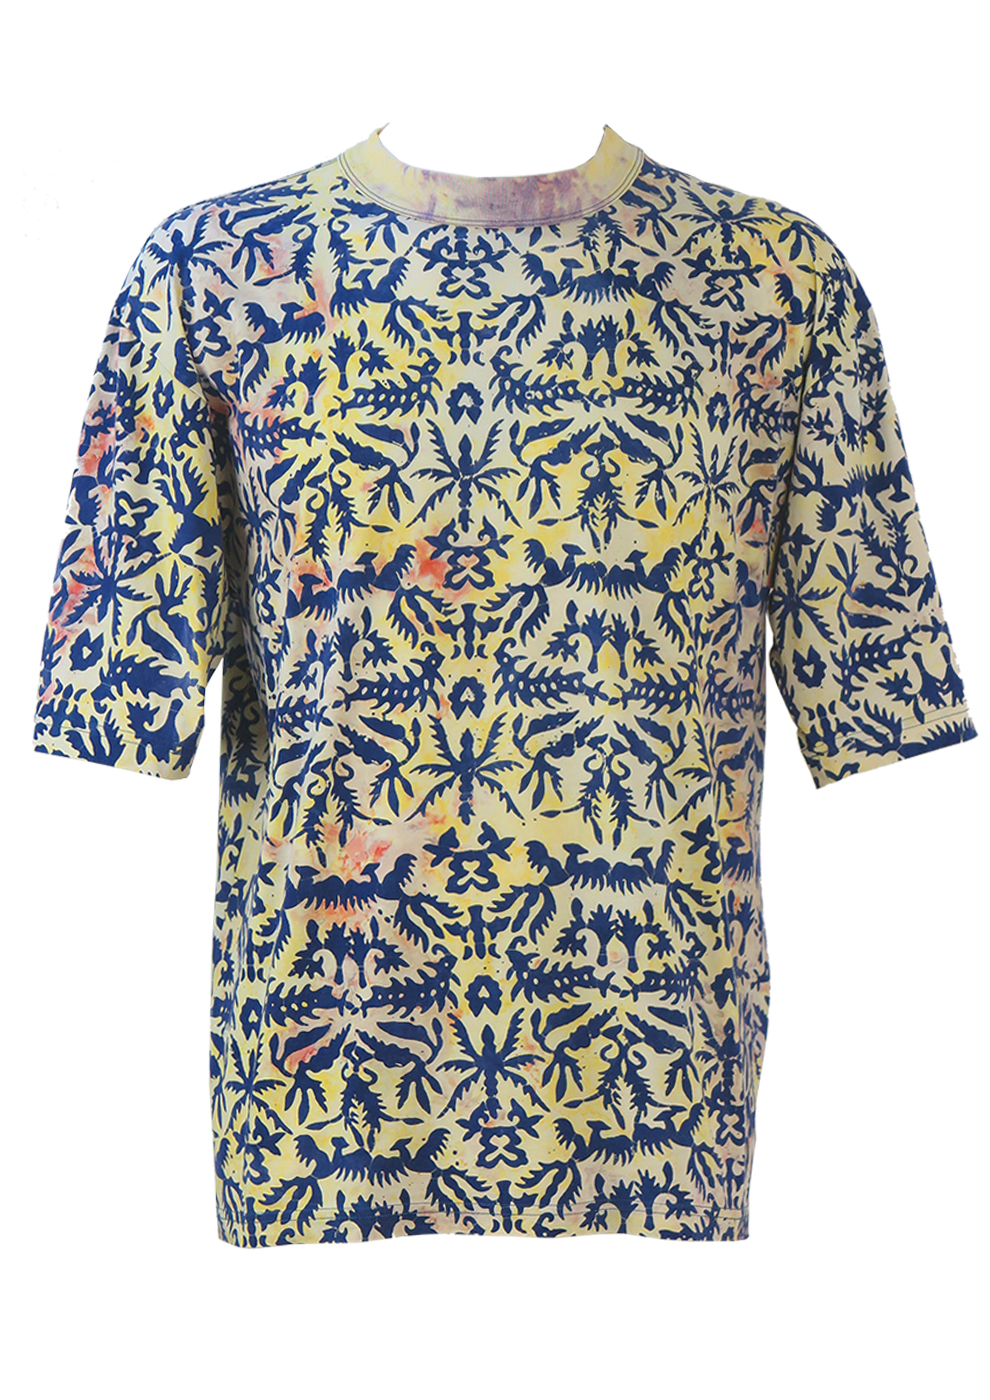 Erstaunlich Multicoloured Tie Dye U0026 Batik Pattern T Shirt .